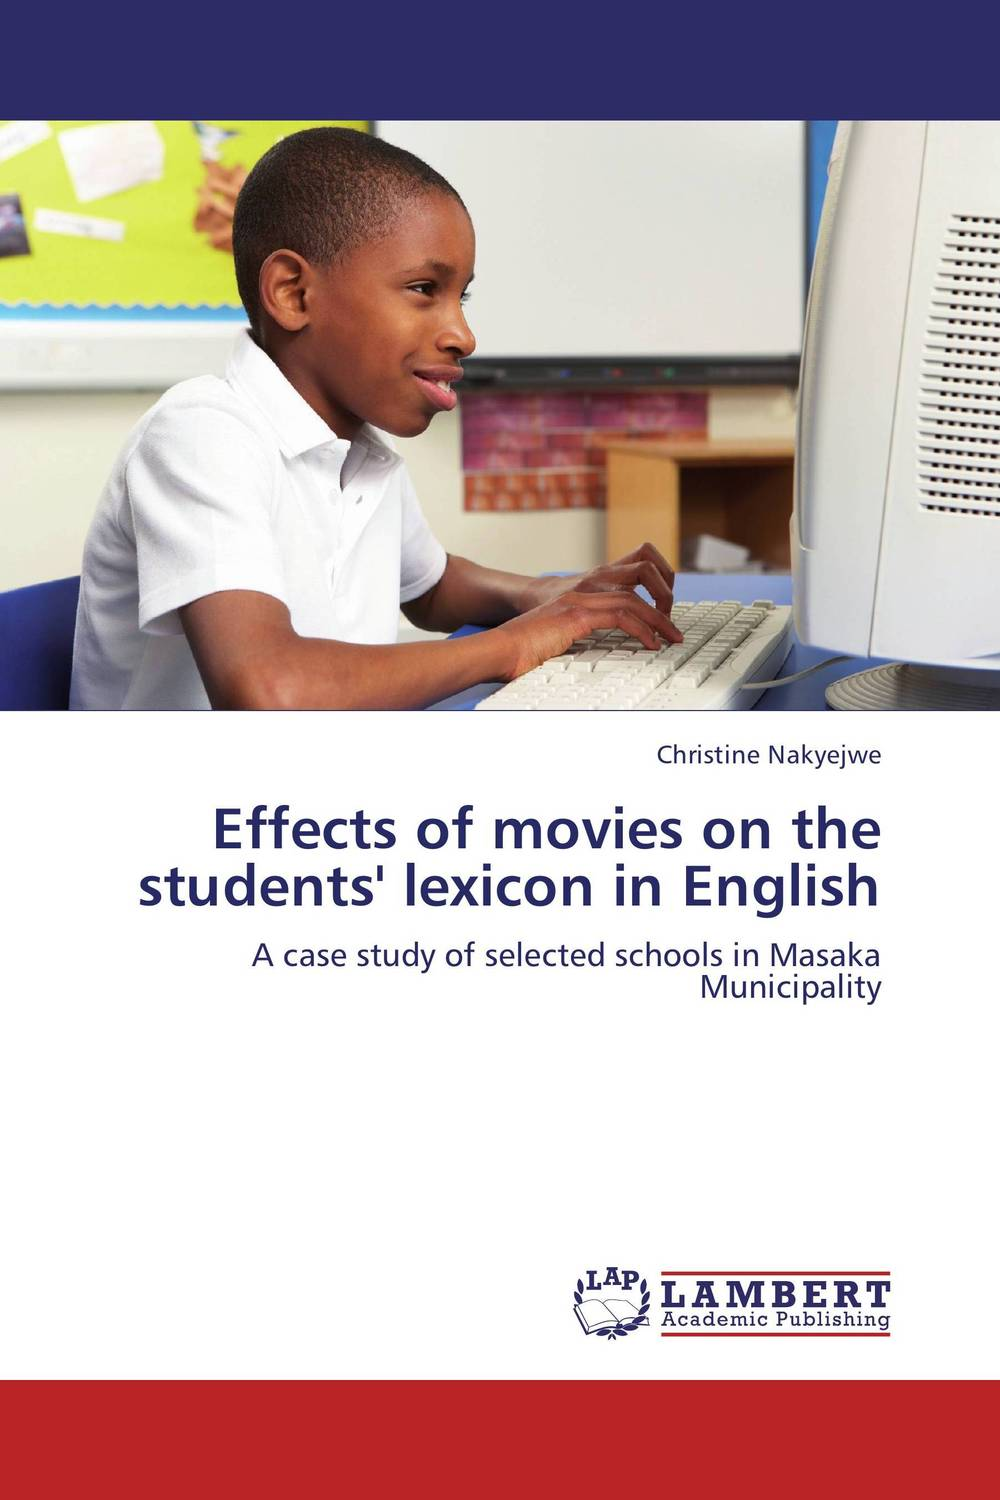 Effects of movies on the students' lexicon in English